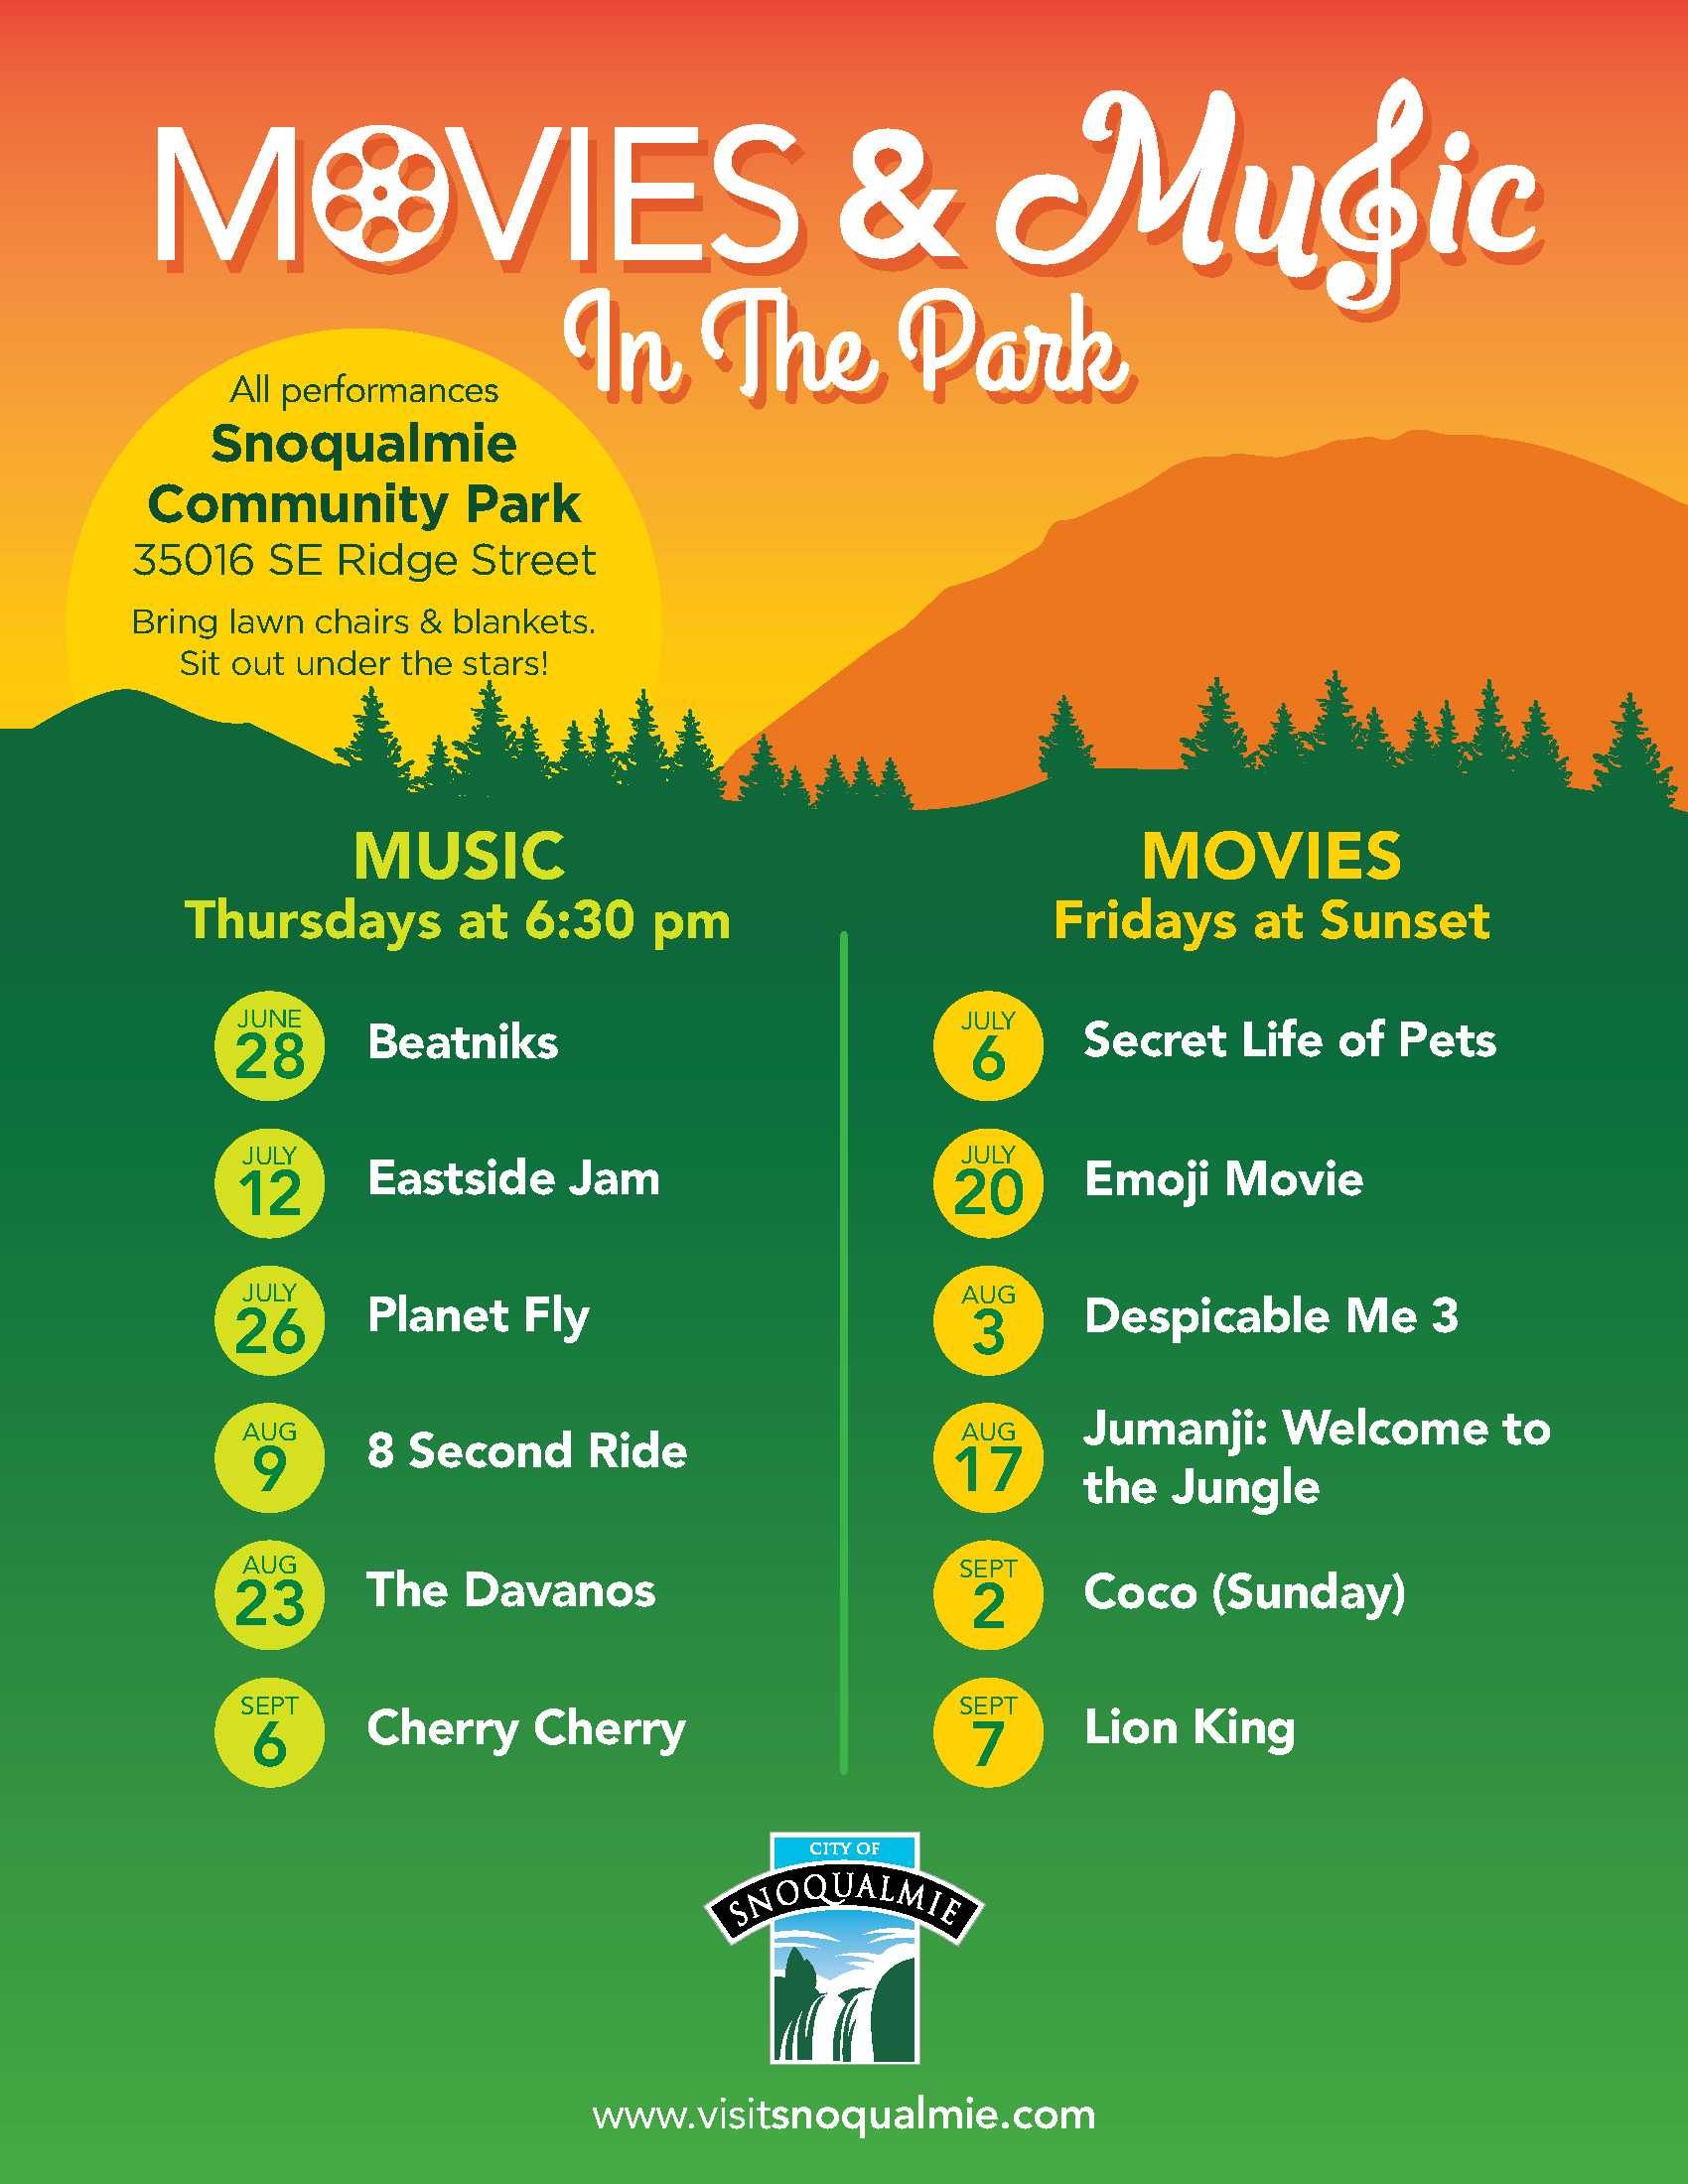 This is a poster with the movies and bands that will be playing at Snoqualmie Community Park in the